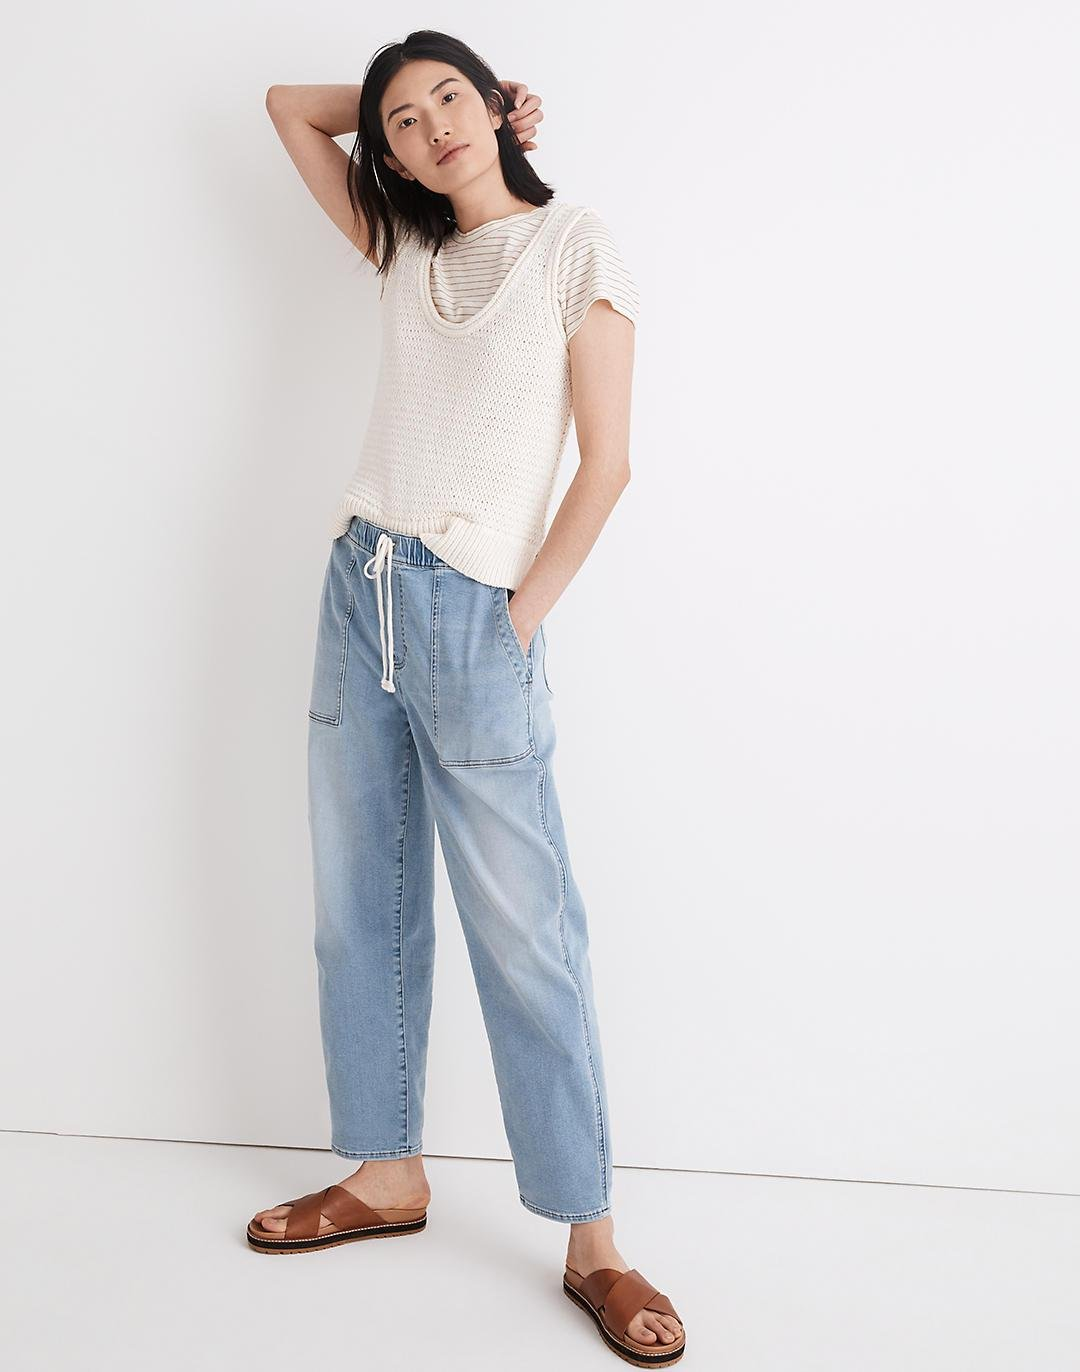 Pull-On Relaxed Jeans in Bellview Wash